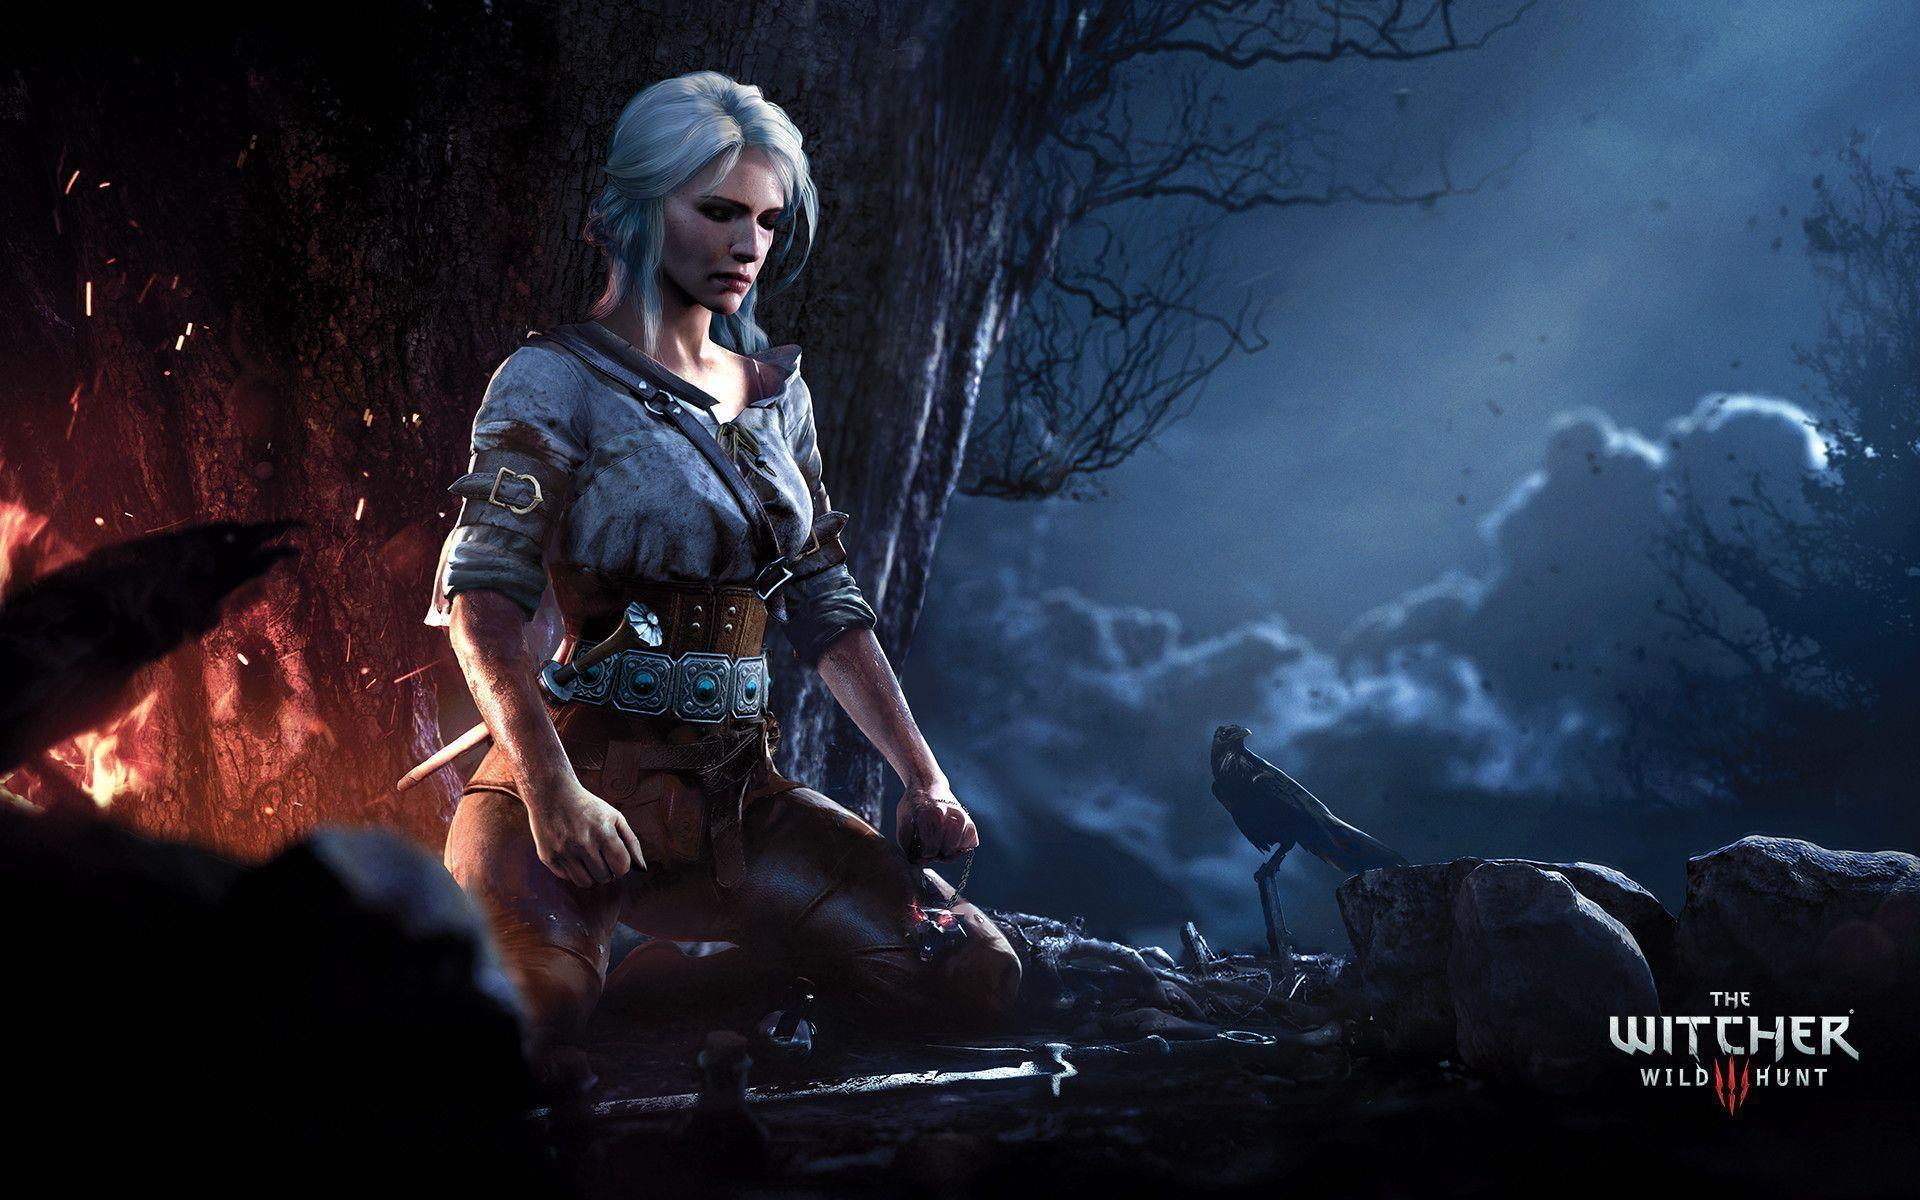 The Witcher 3 Wild Hunt Ciri Wallpapers